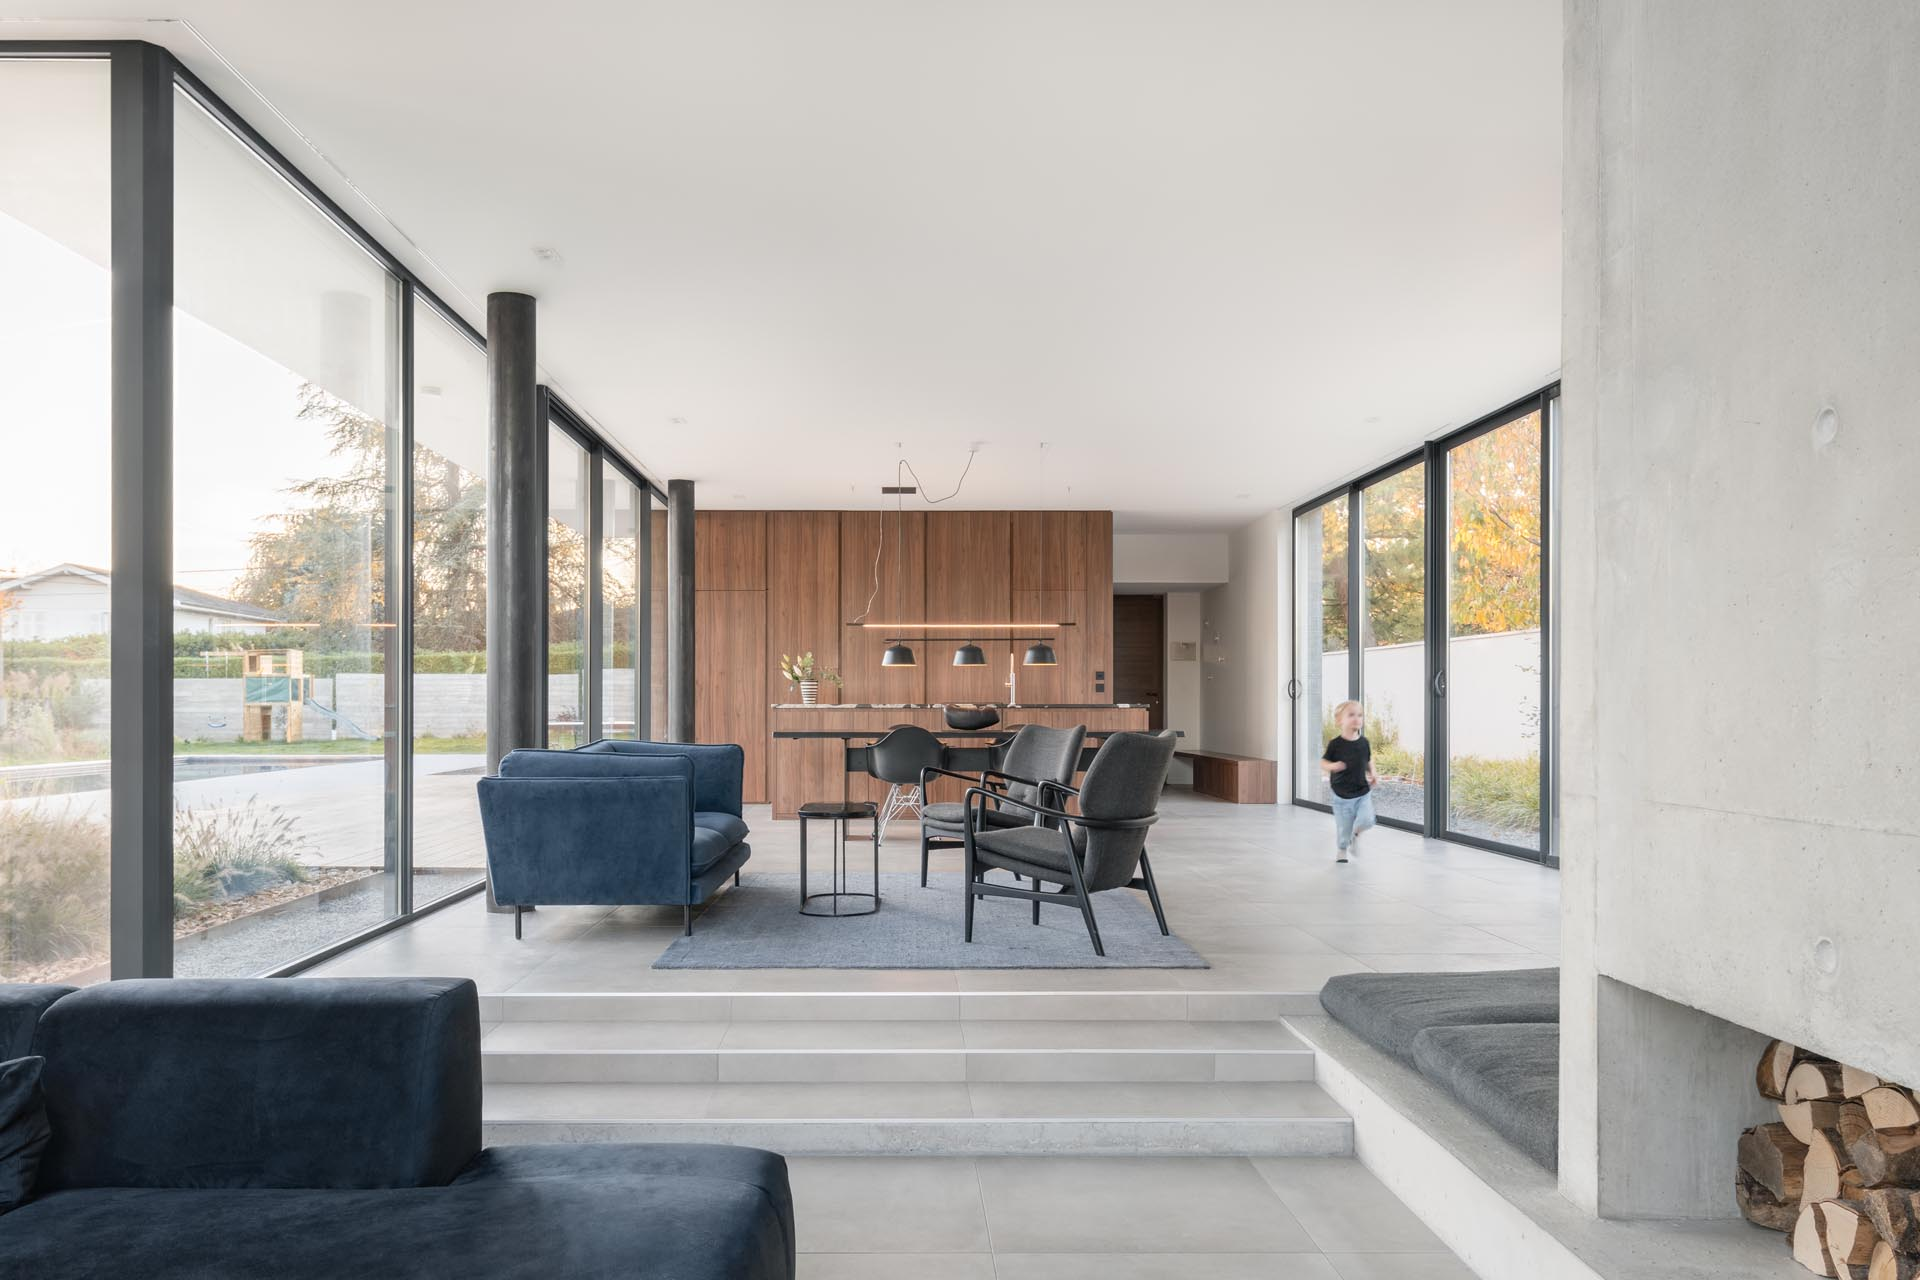 The living and dining areas of this modern home are open plan, with a few steps separating the two spaces. There's also a small ledge that's a dedicated space for a dog bed.